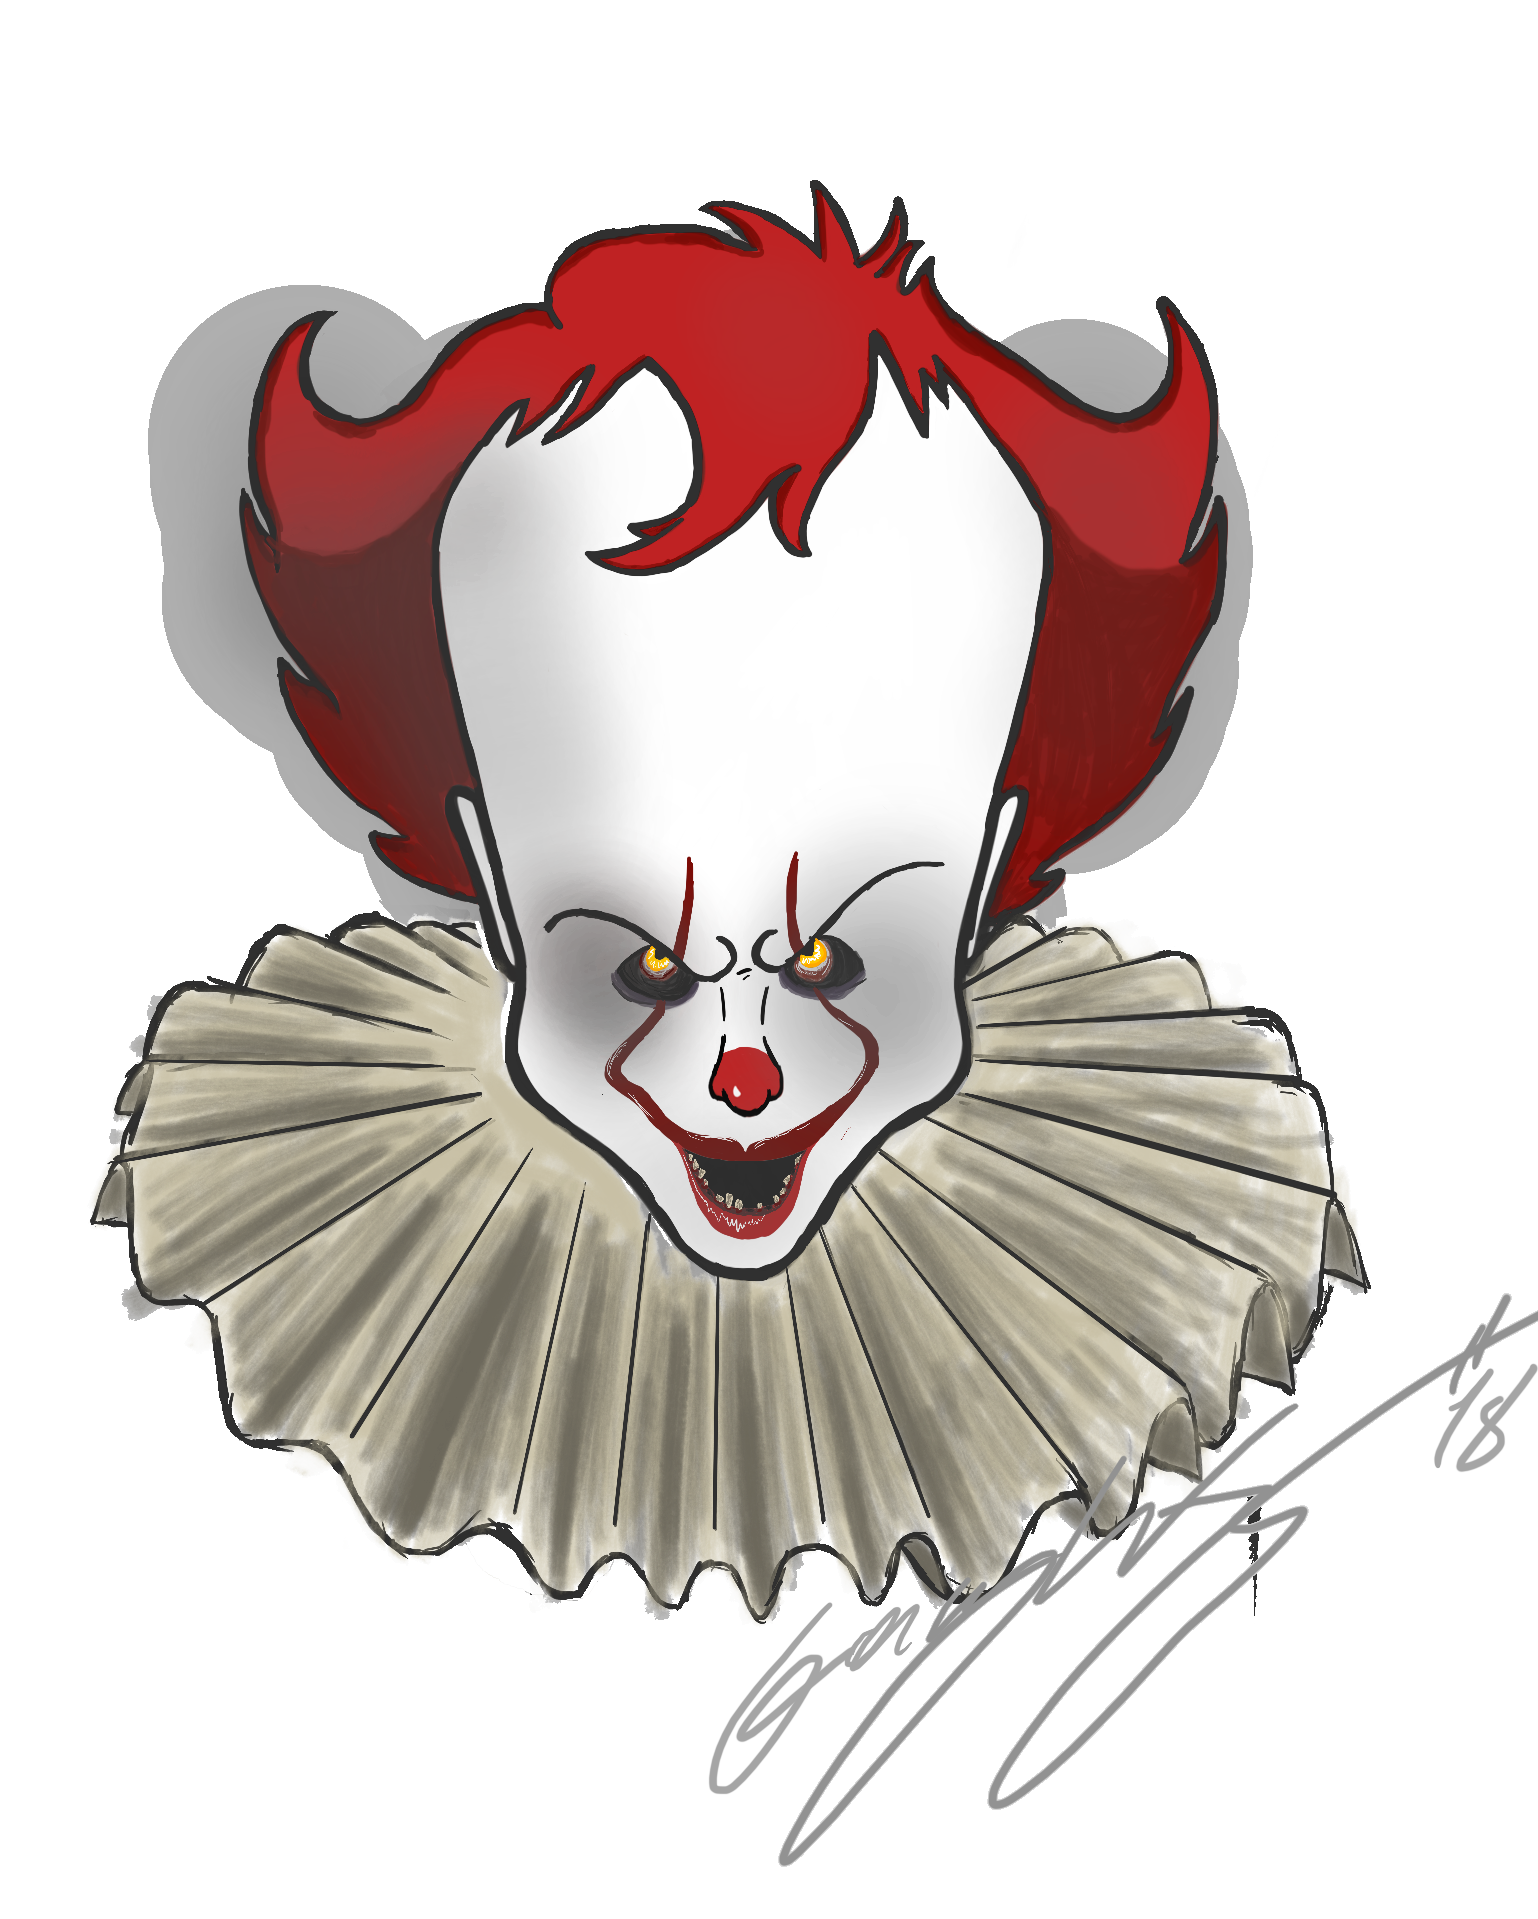 Clown clipart pennywise. Image png goosebumps wiki